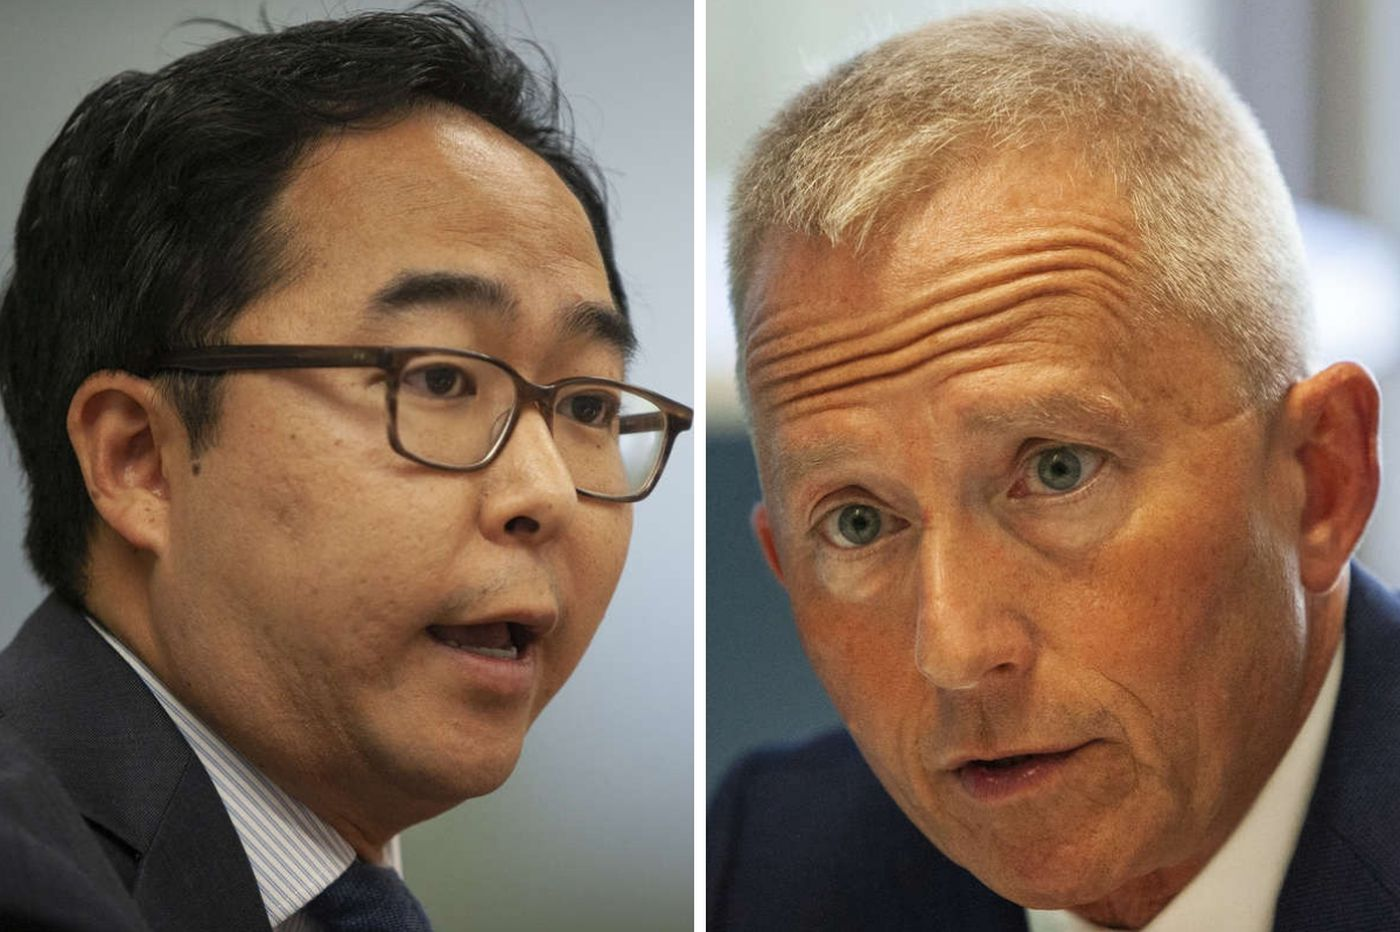 Why Democrats Chrissy Houlahan and Andy Kim shifted on impeachment and Jeff Van Drew didn't